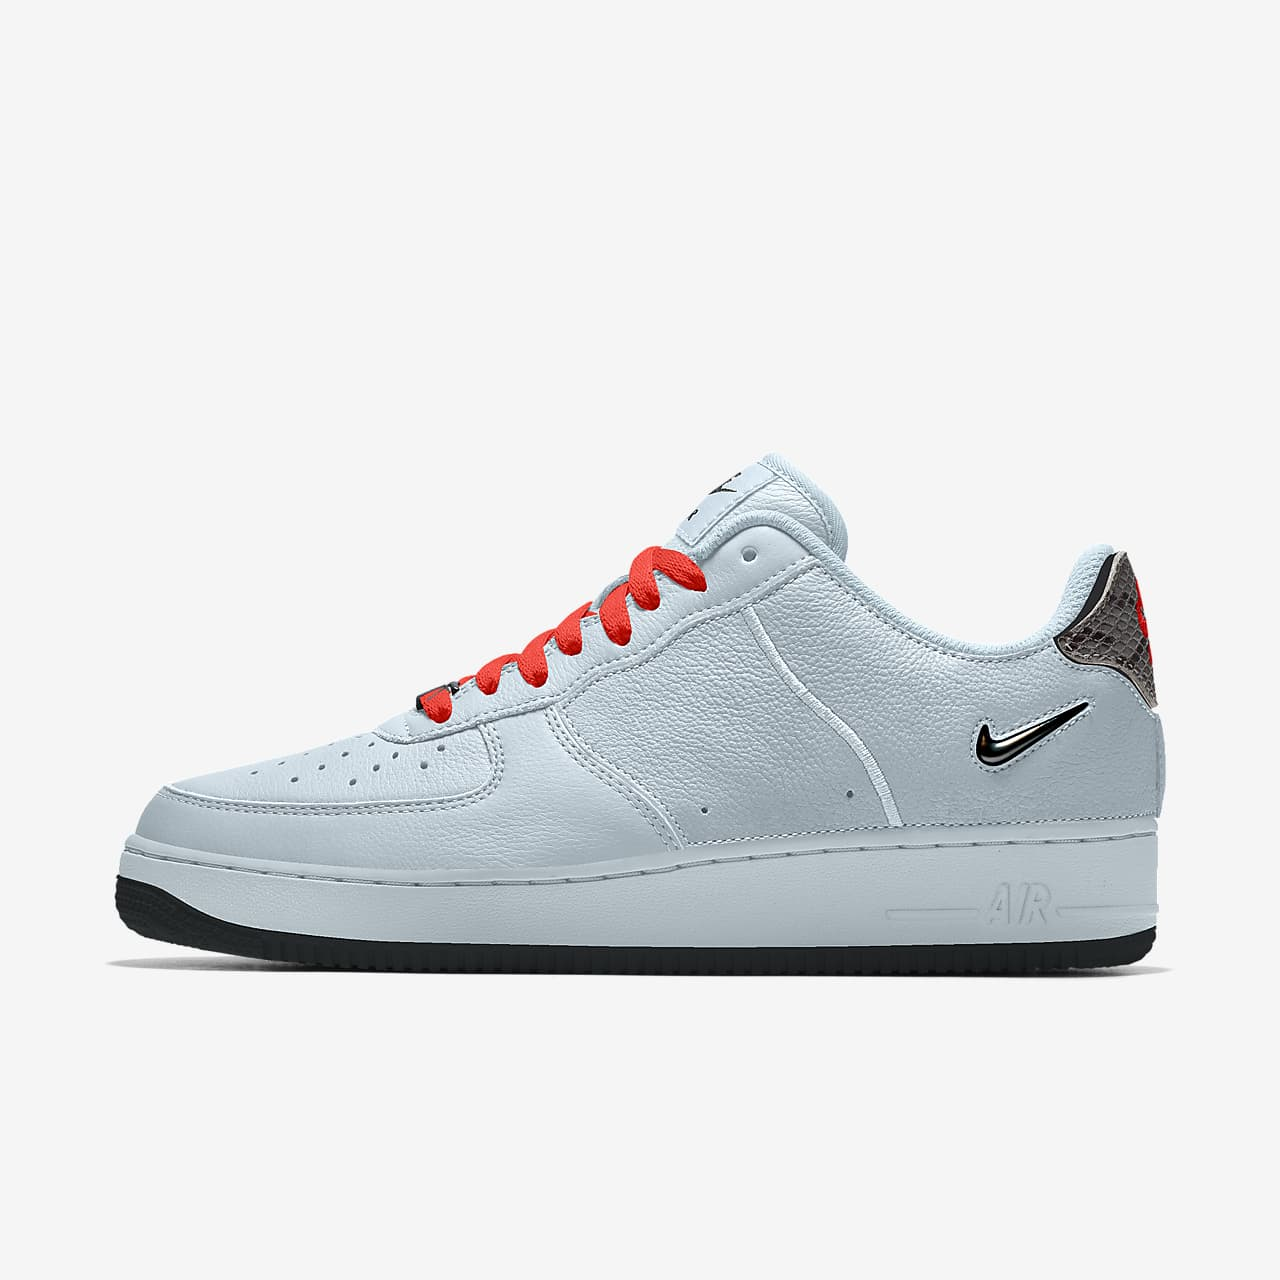 Chaussure personnalisable Nike Air Force 1/1 Unlocked By You